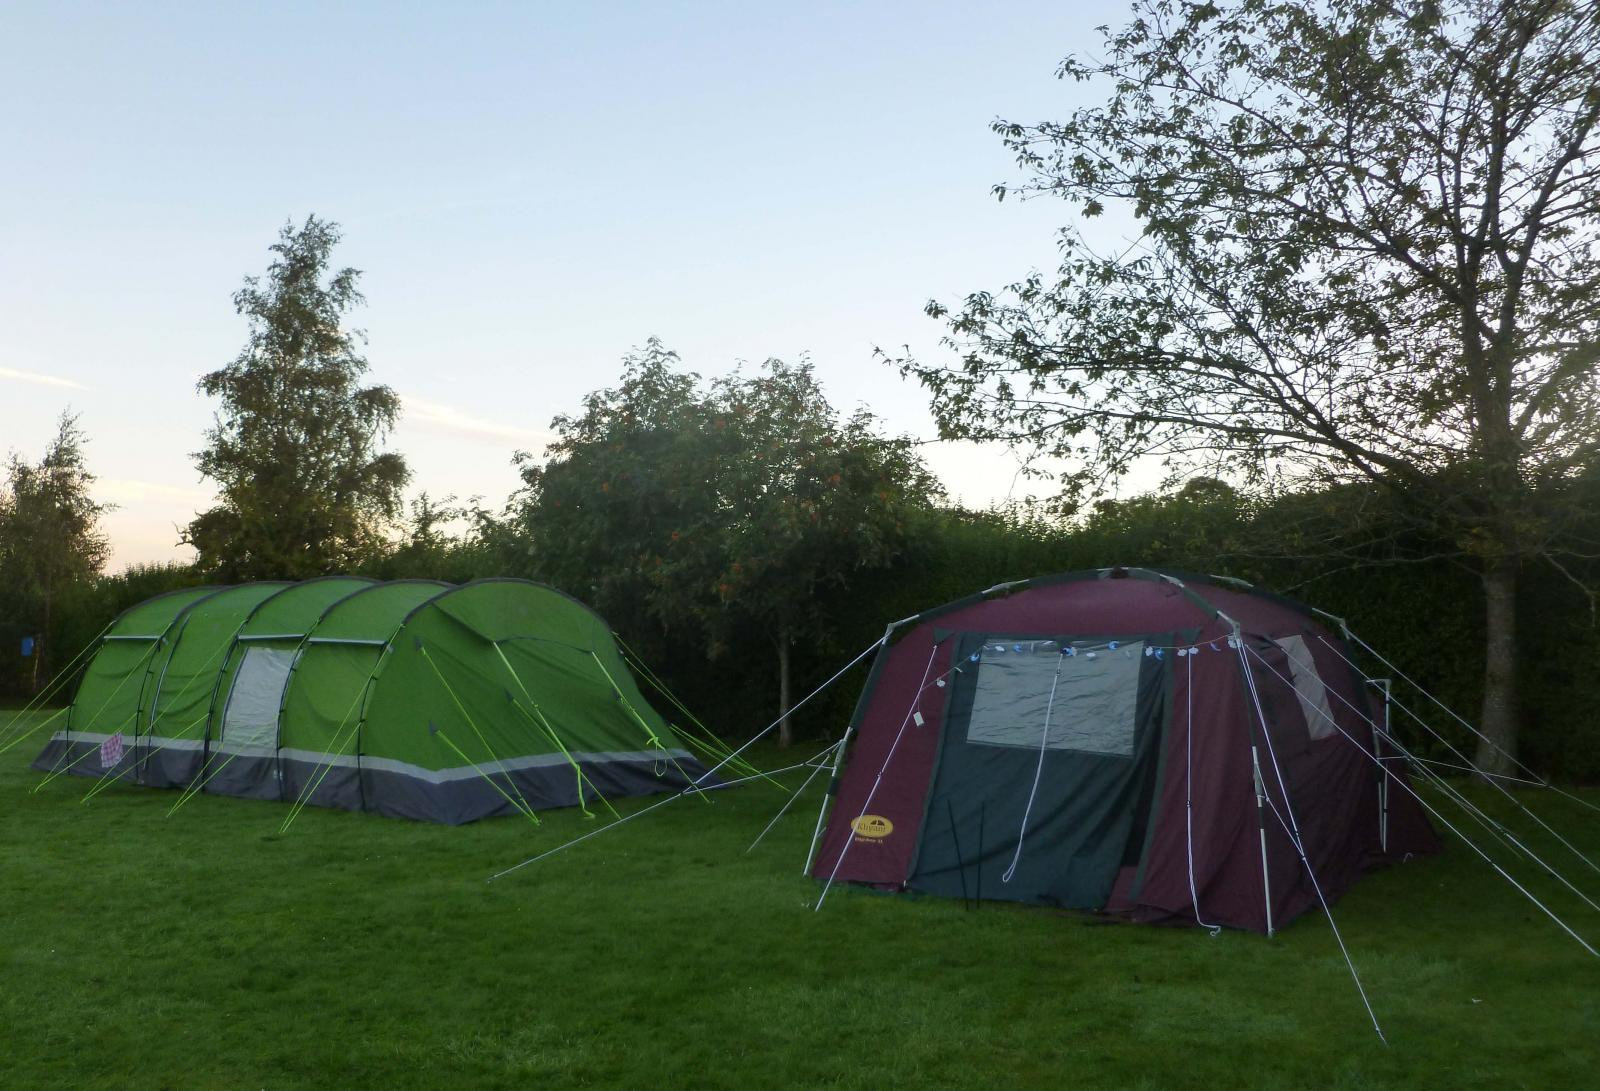 Camping this weekend, cooler with showers